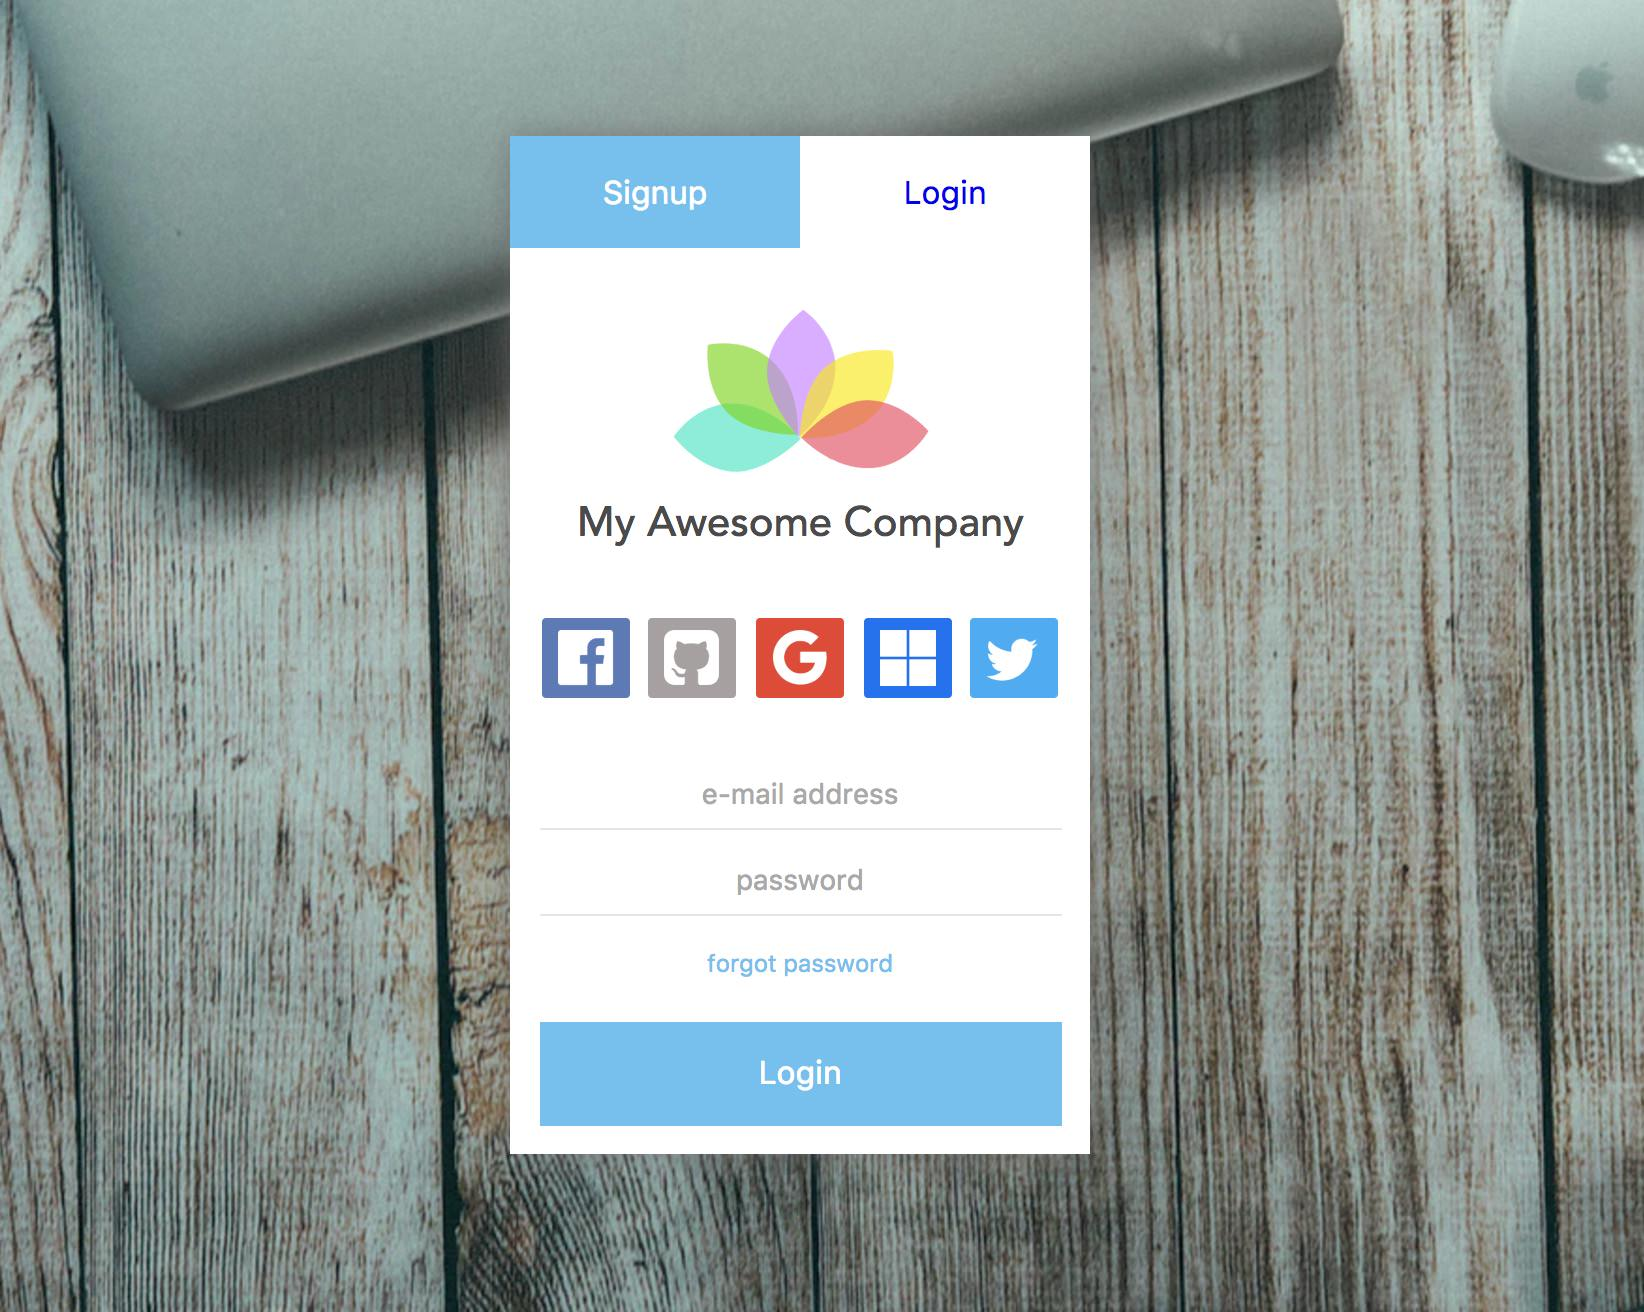 auth-component example